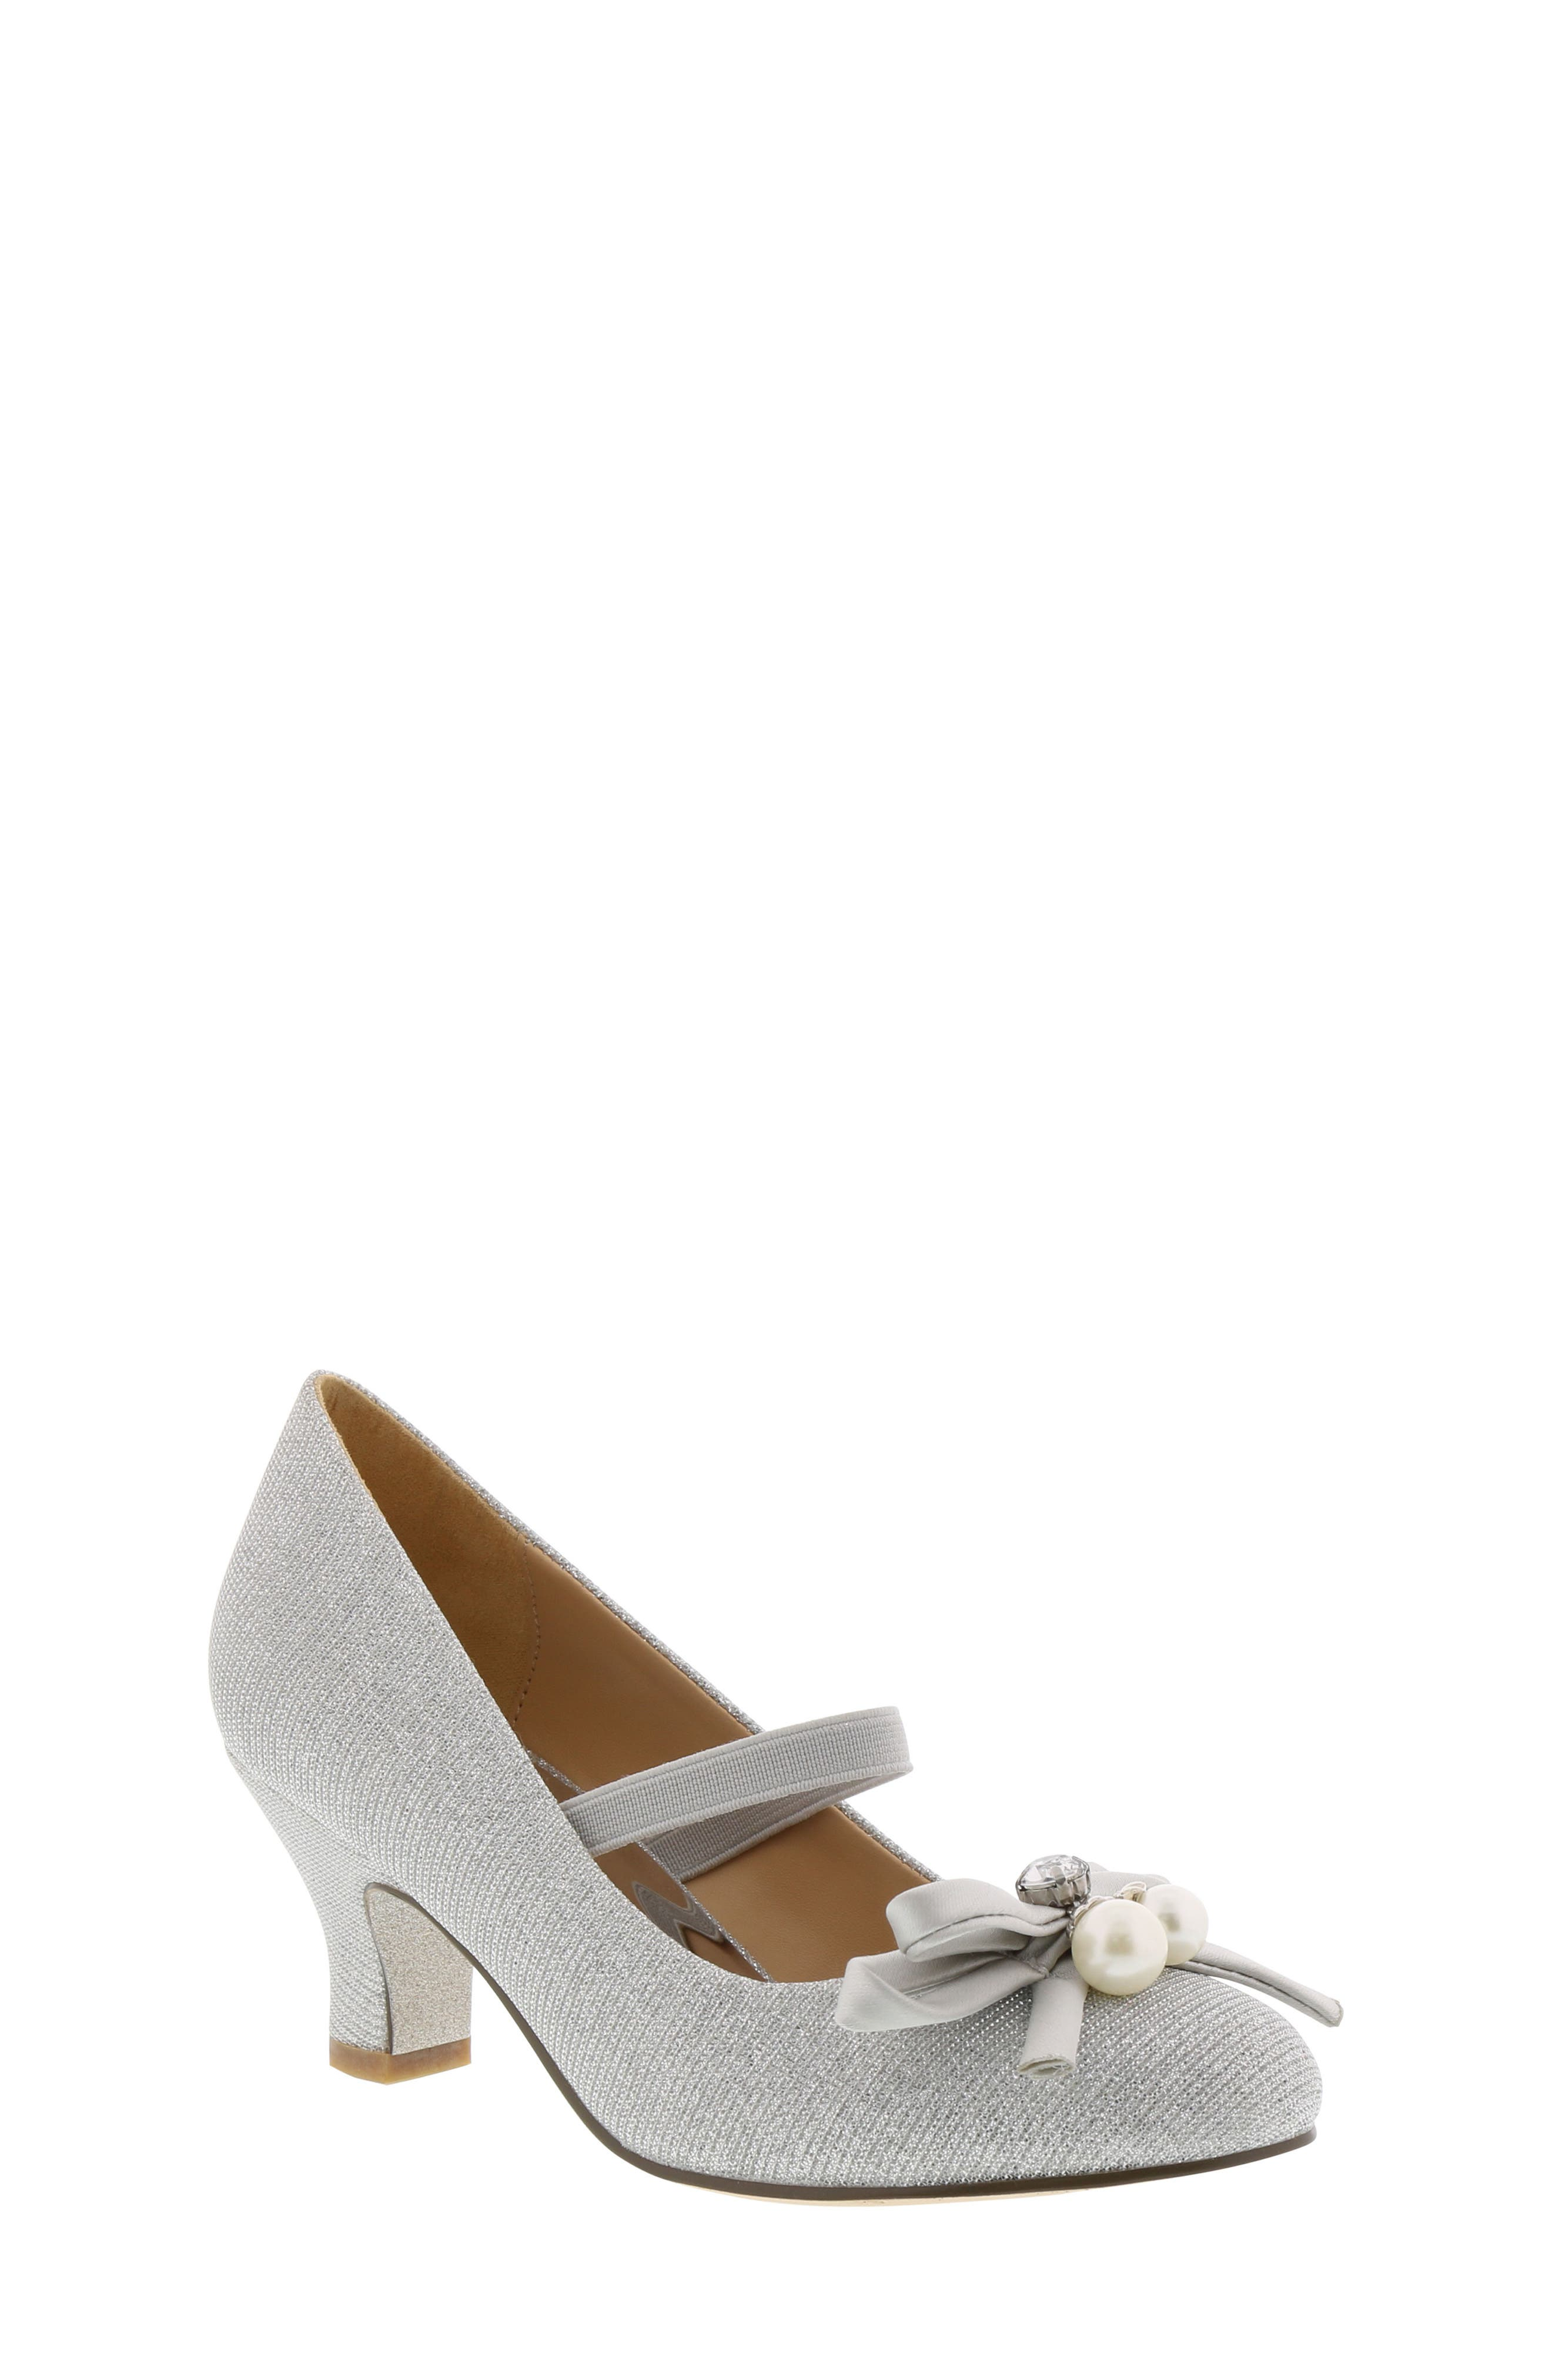 Badgley Mischka Milah Embellished Bow Pump (Toddler, Little Kid & Big Kid)